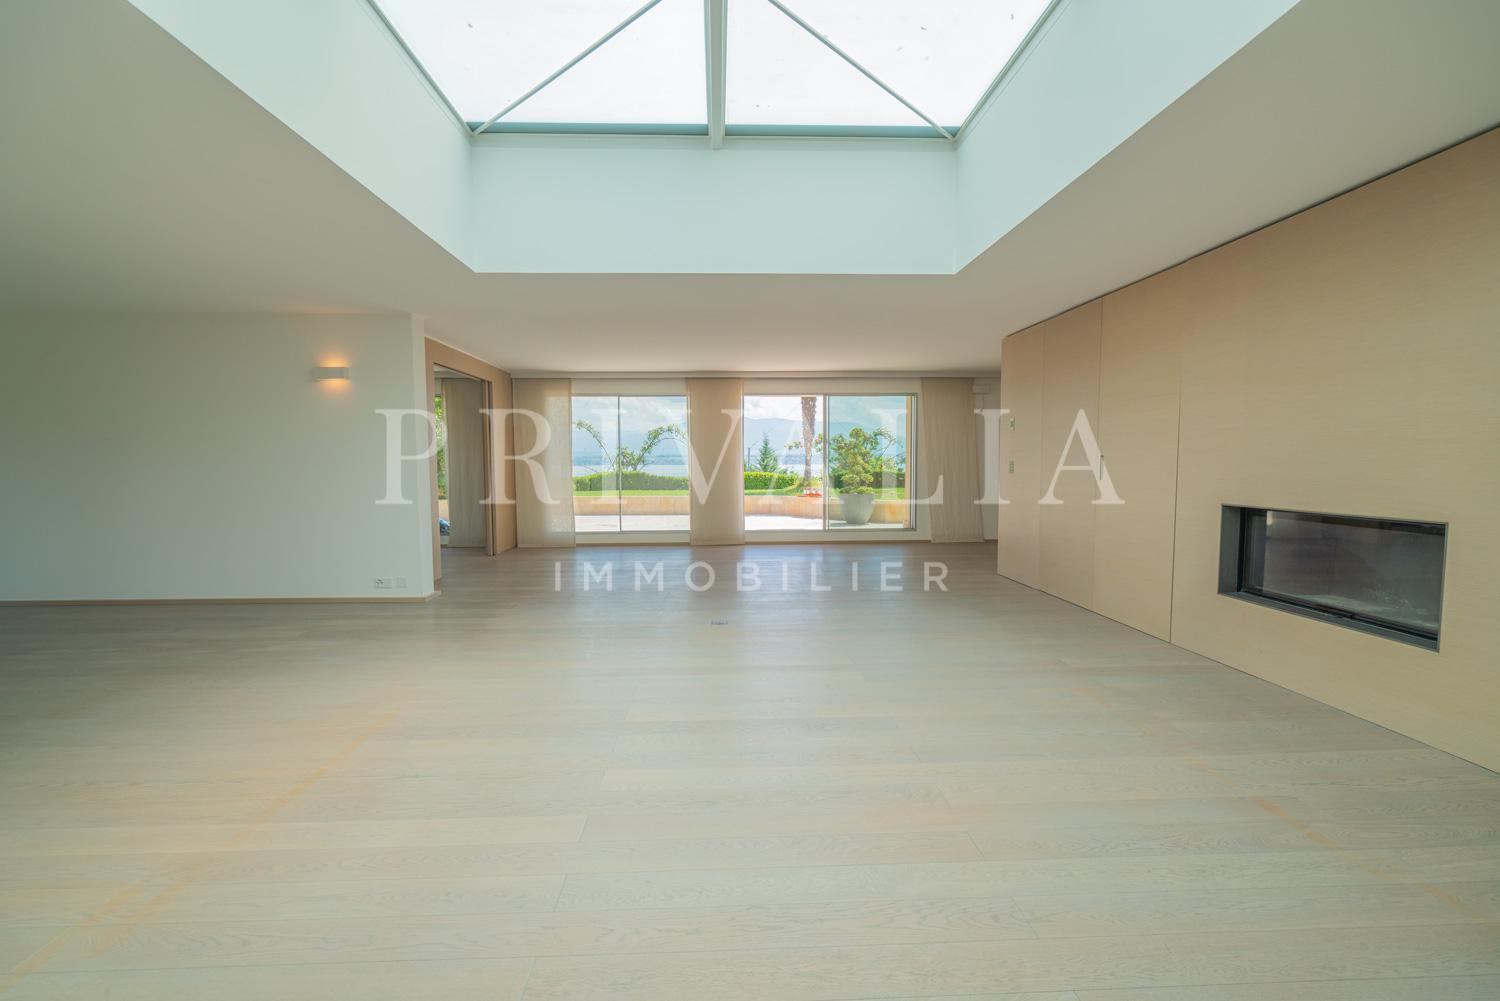 PrivaliaSuperb penthouse with terraces and garden and panoramic view of the lake